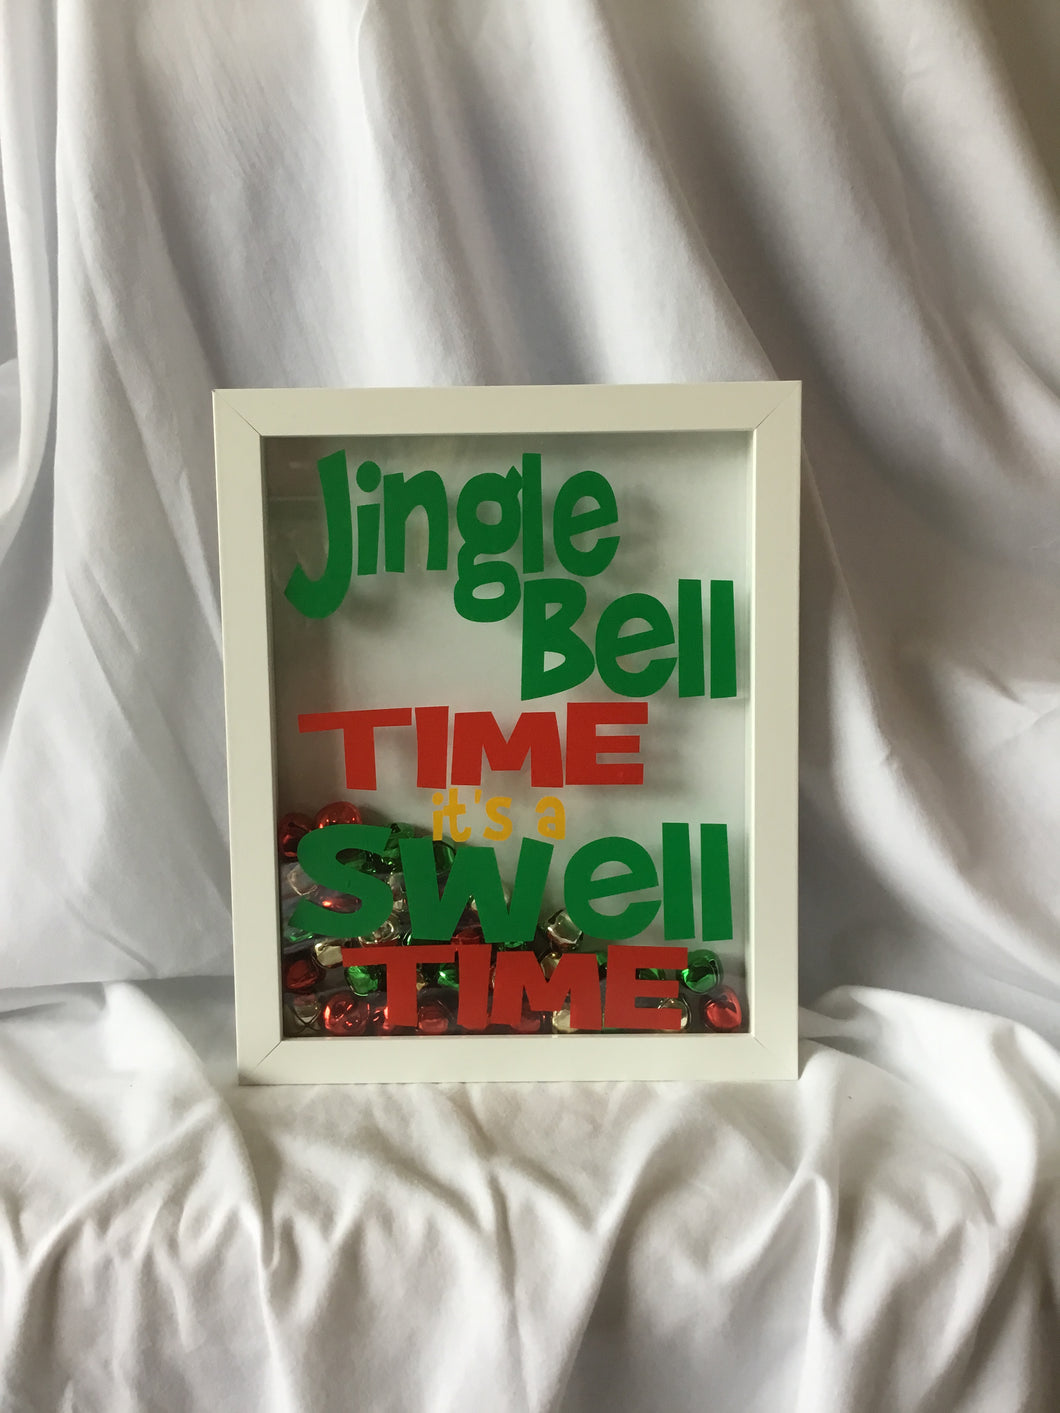 Jingle Bell Time! It's a Swell Time Shadow Box